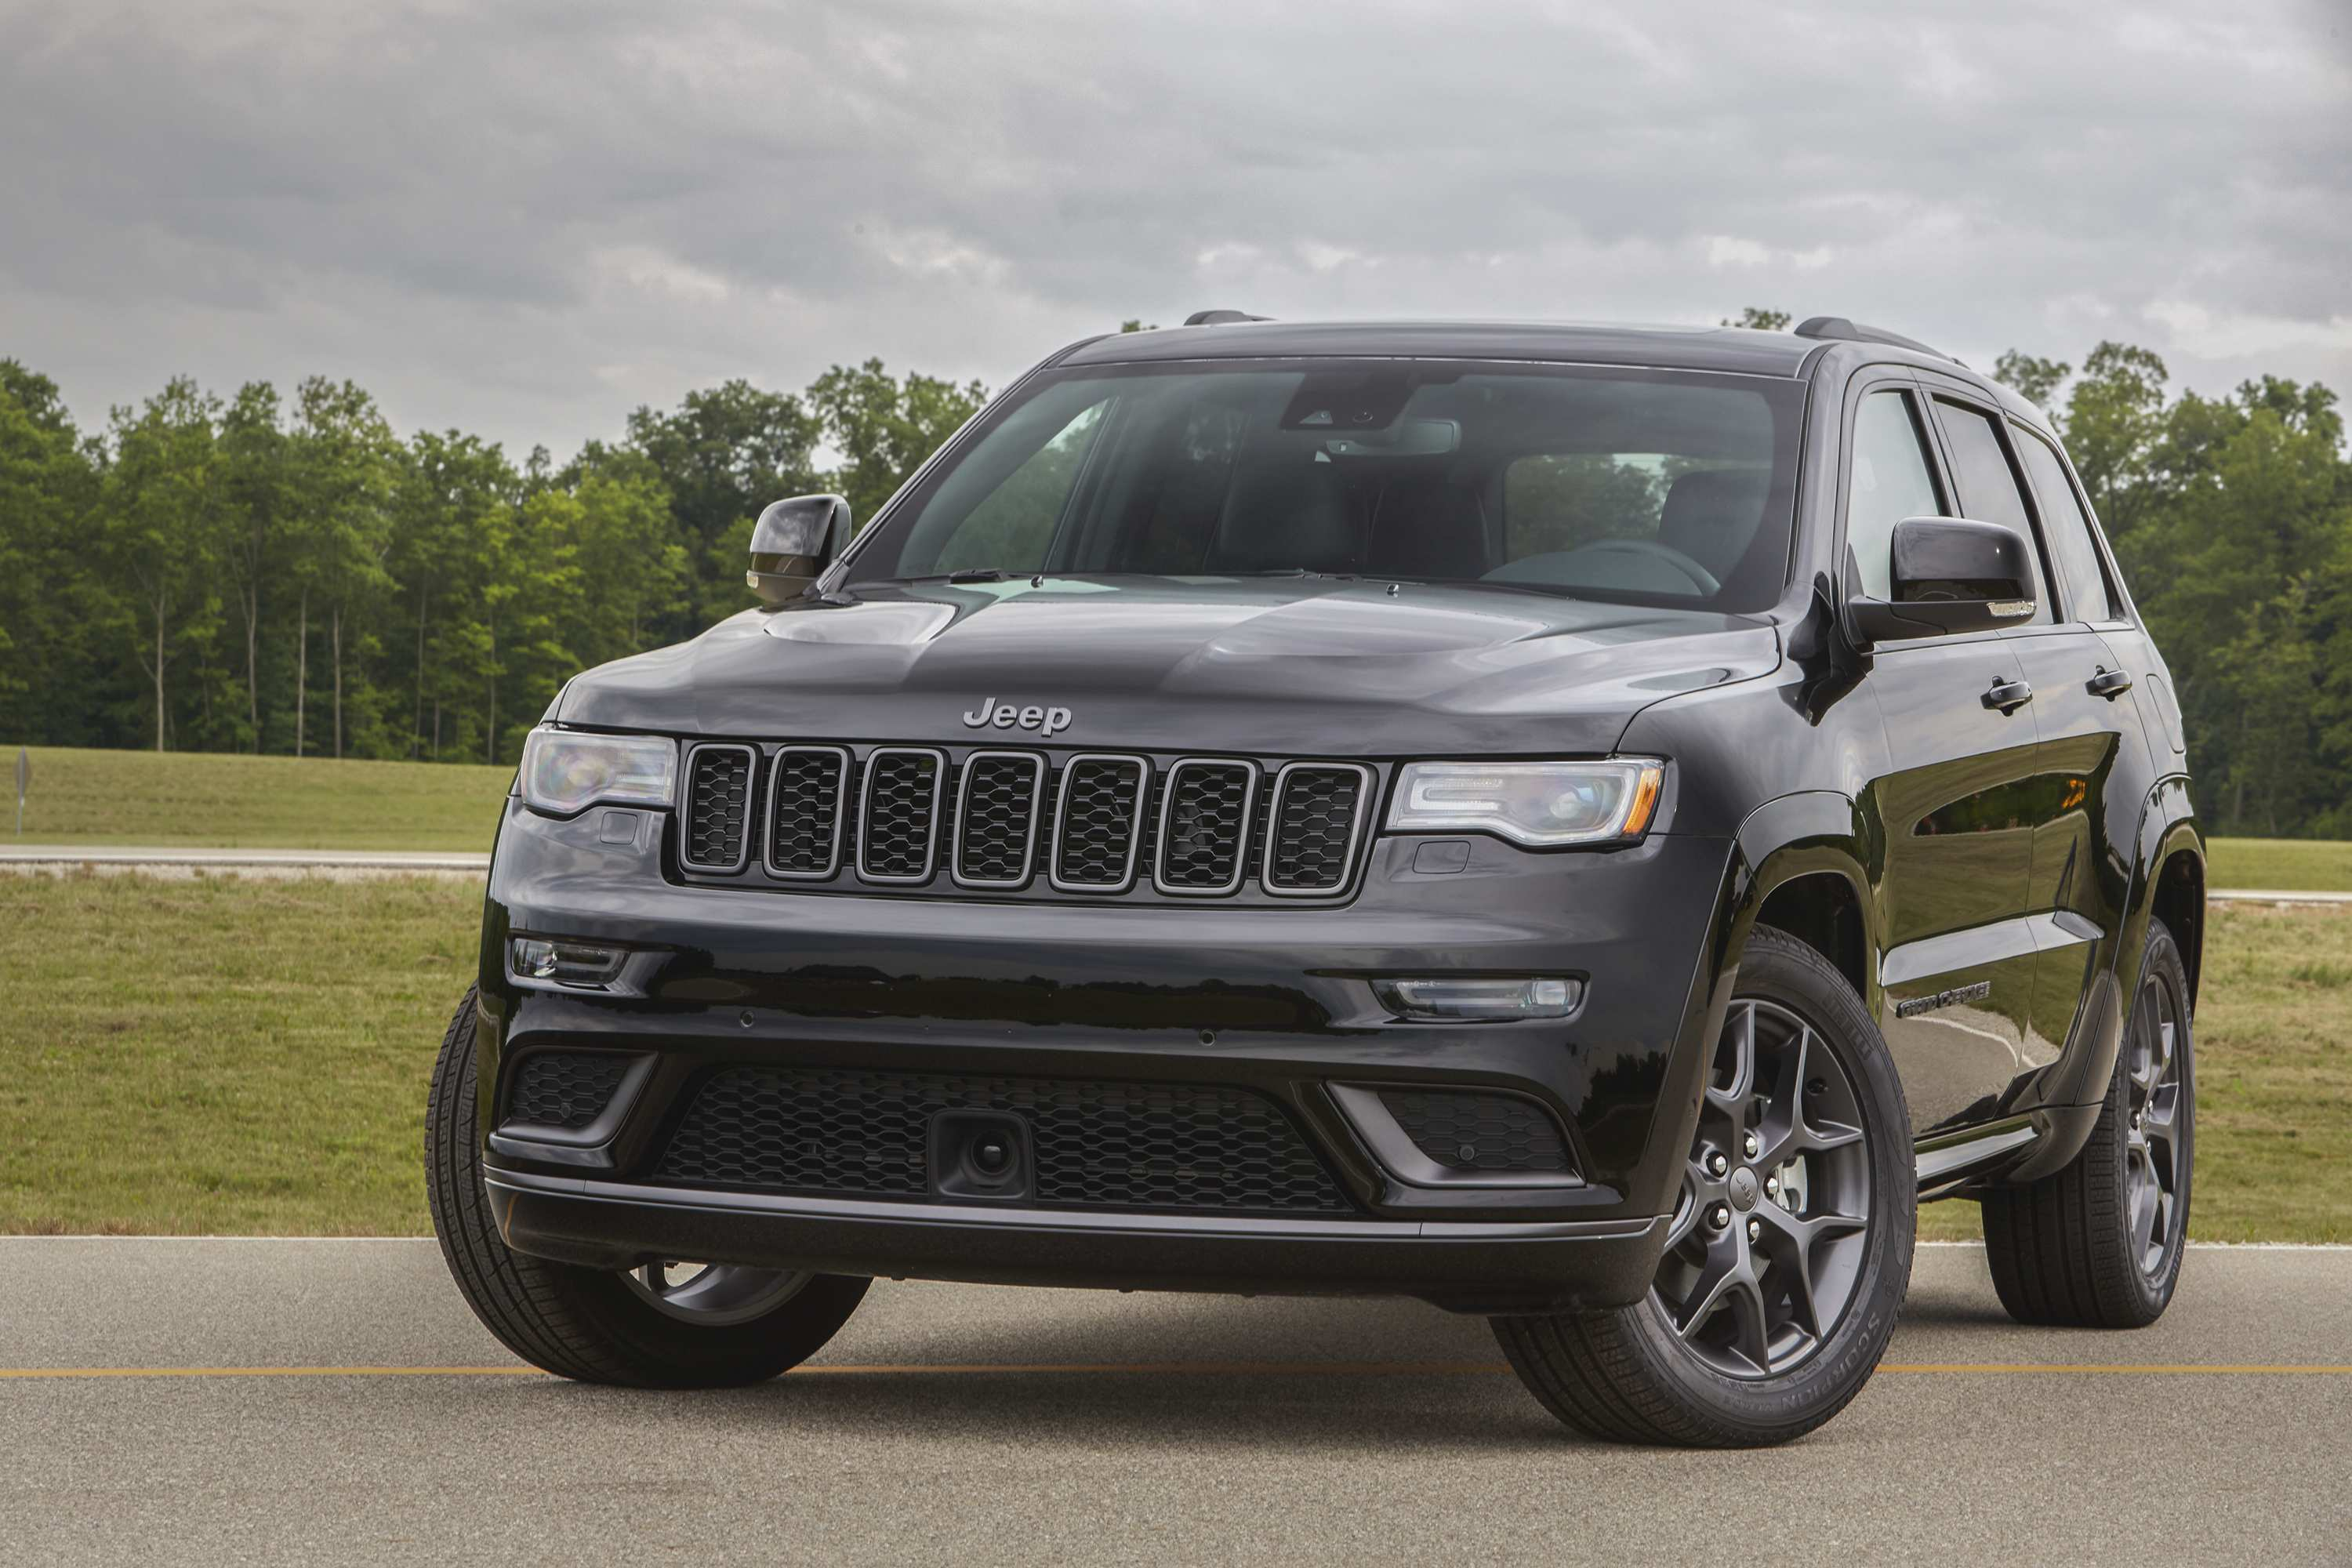 91 All New Best 2019 Jeep Grand Cherokee Limited X New Interior First Drive for Best 2019 Jeep Grand Cherokee Limited X New Interior